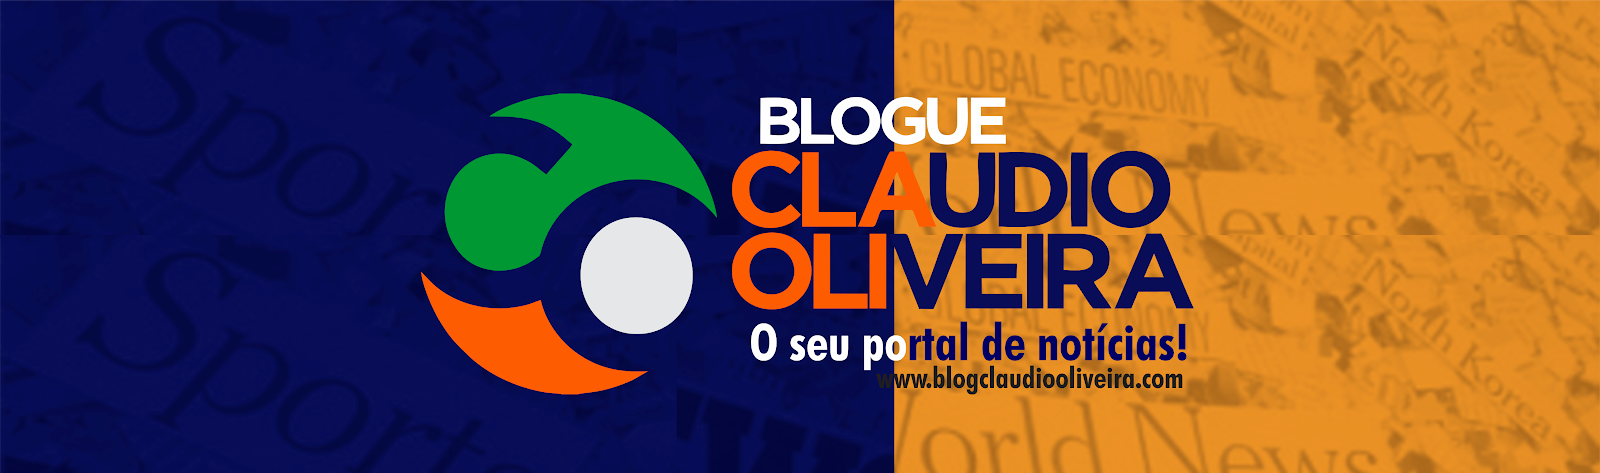 Blog Claudio Oliveira